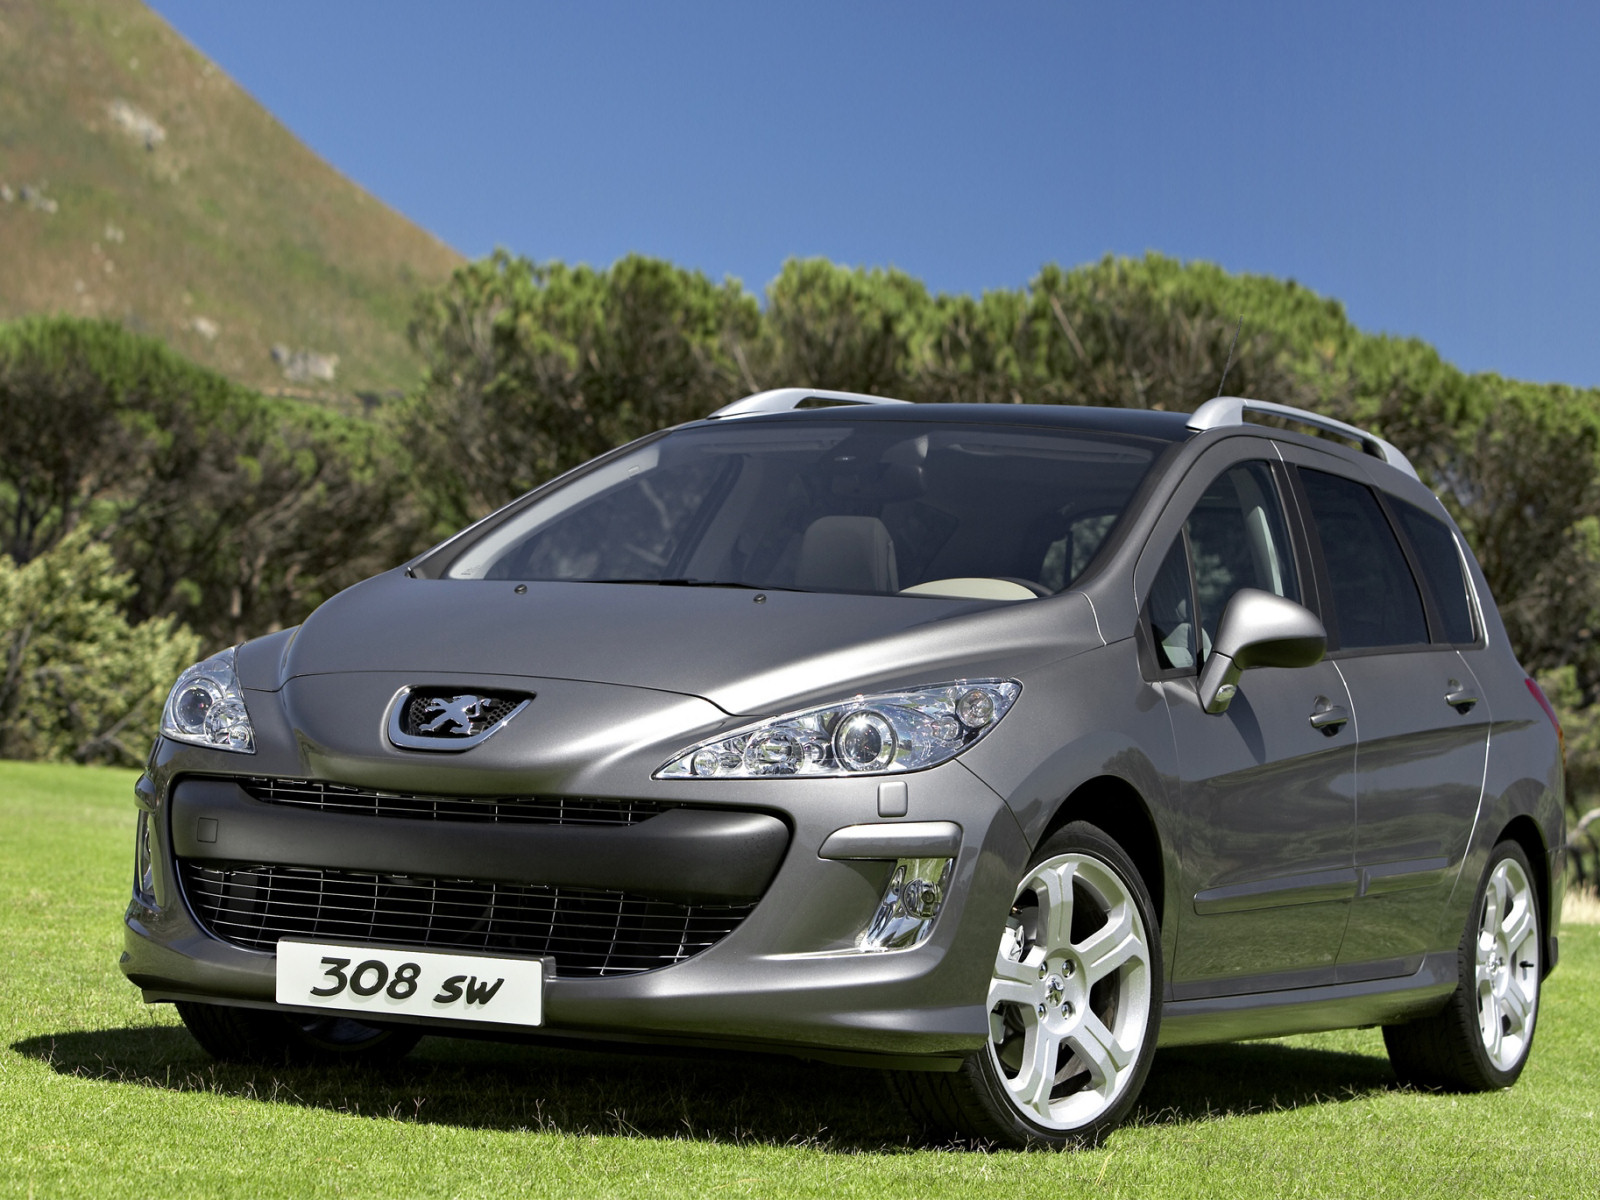 peugeot 308 2005 review amazing pictures and images look at the car